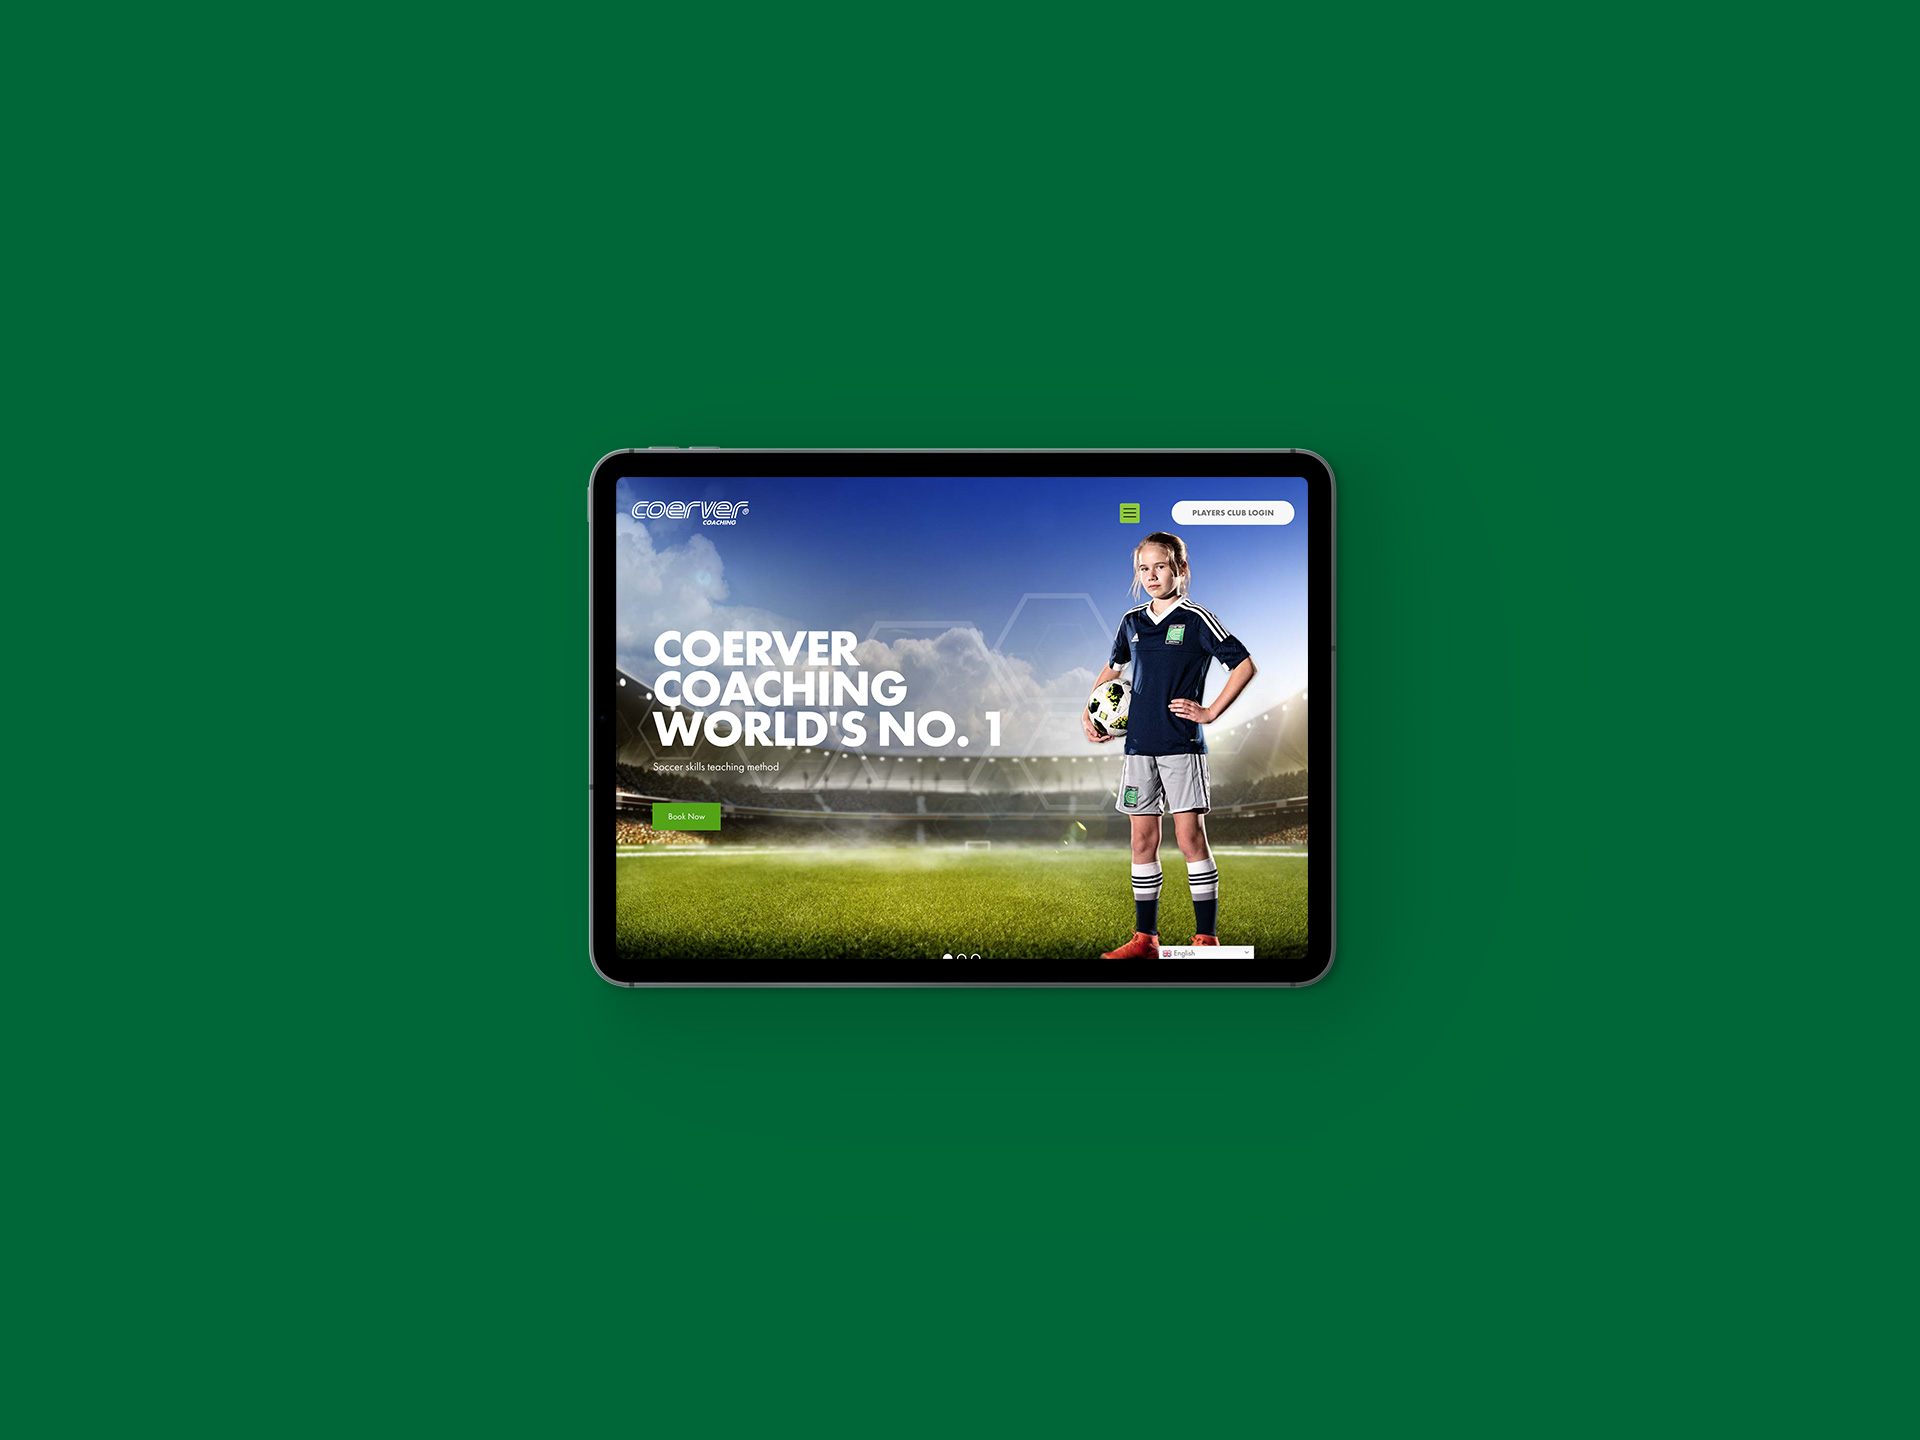 Coerver Coaching Website Ipad